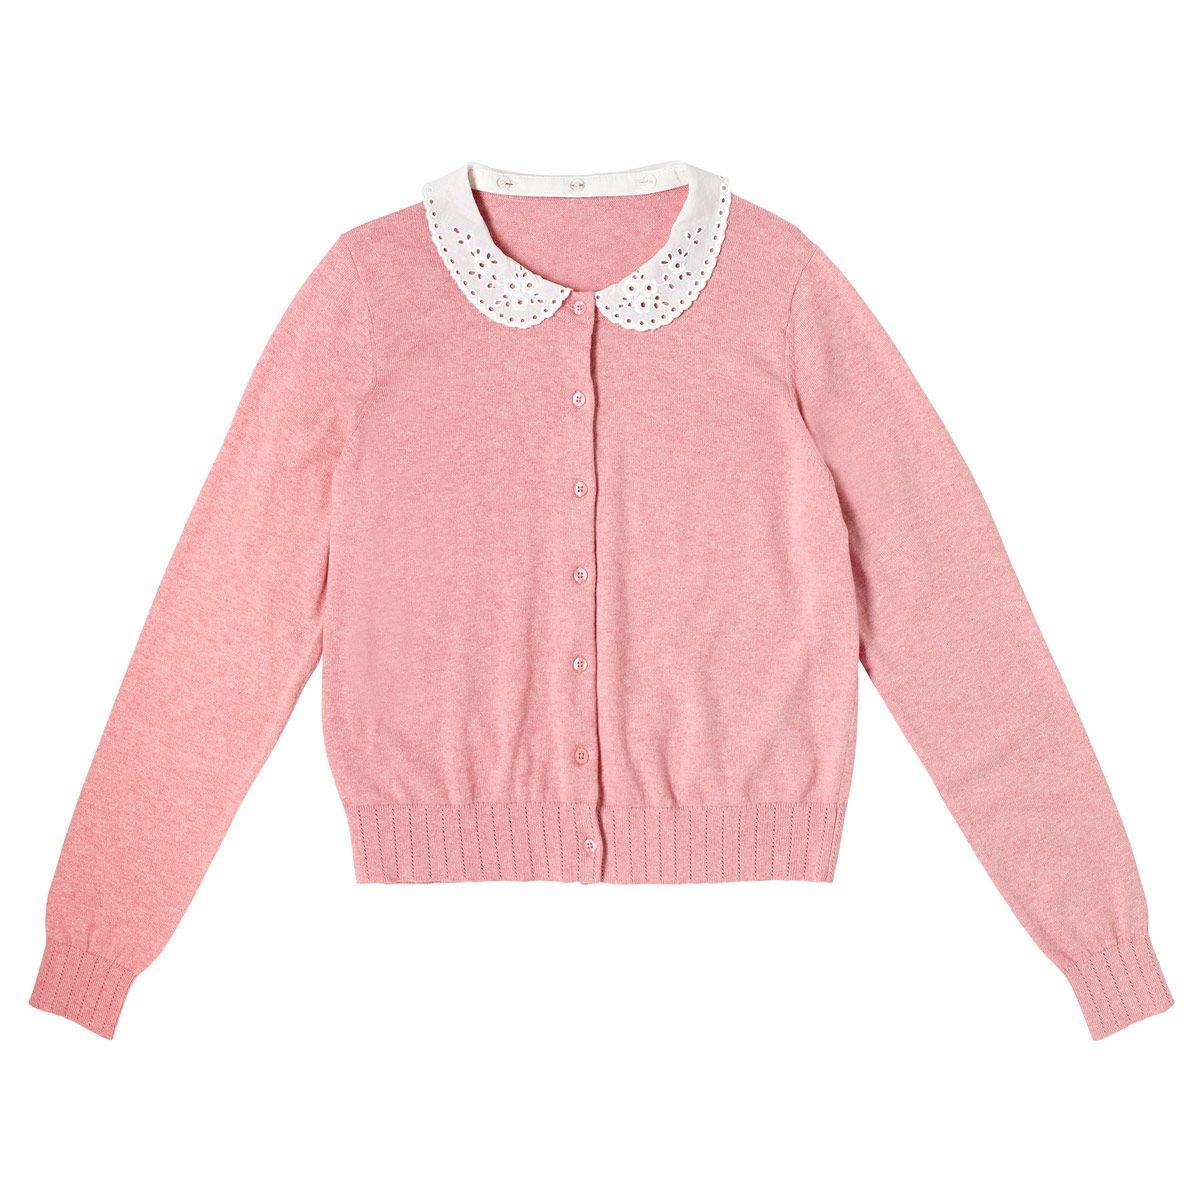 Broderie Collar Cardigan | Knitwear | CathKidston | Clothing ...